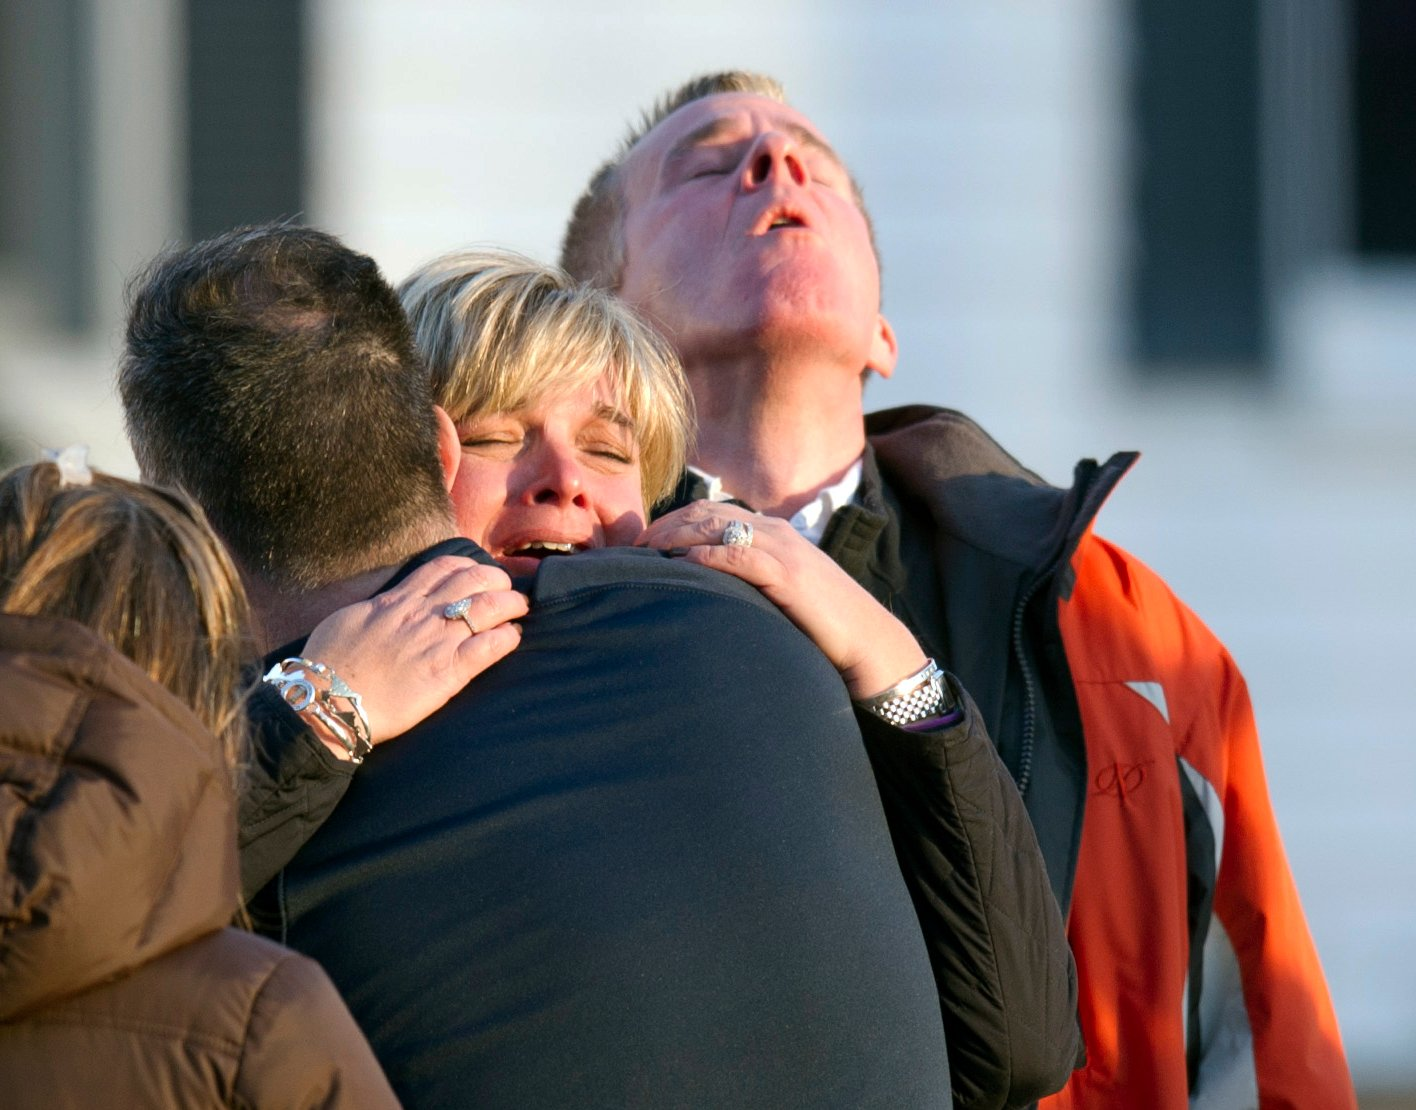 Family members after hearing news of their loved ones from officials December 14, 2012 in Newtown, Connecticut following the Sandy Hook school shooting. (DON EMMERT/AFP via Getty Images)